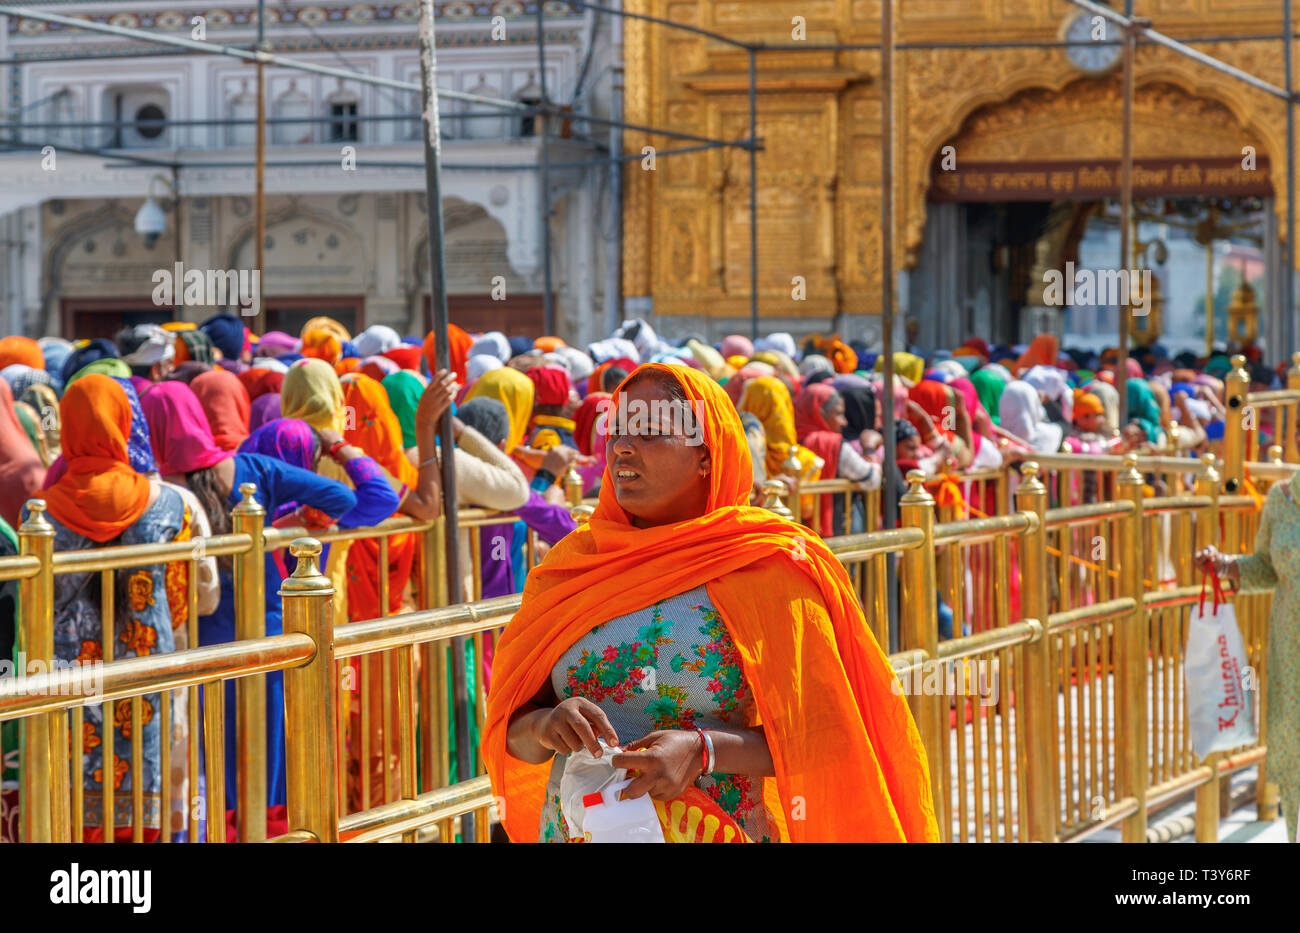 Local Sikh women queueing on the Causeway to enter the Sanctum Sanctorum of the Golden Temple of Amritsar, the holiest pilgrimage site of Sikhism - Stock Image